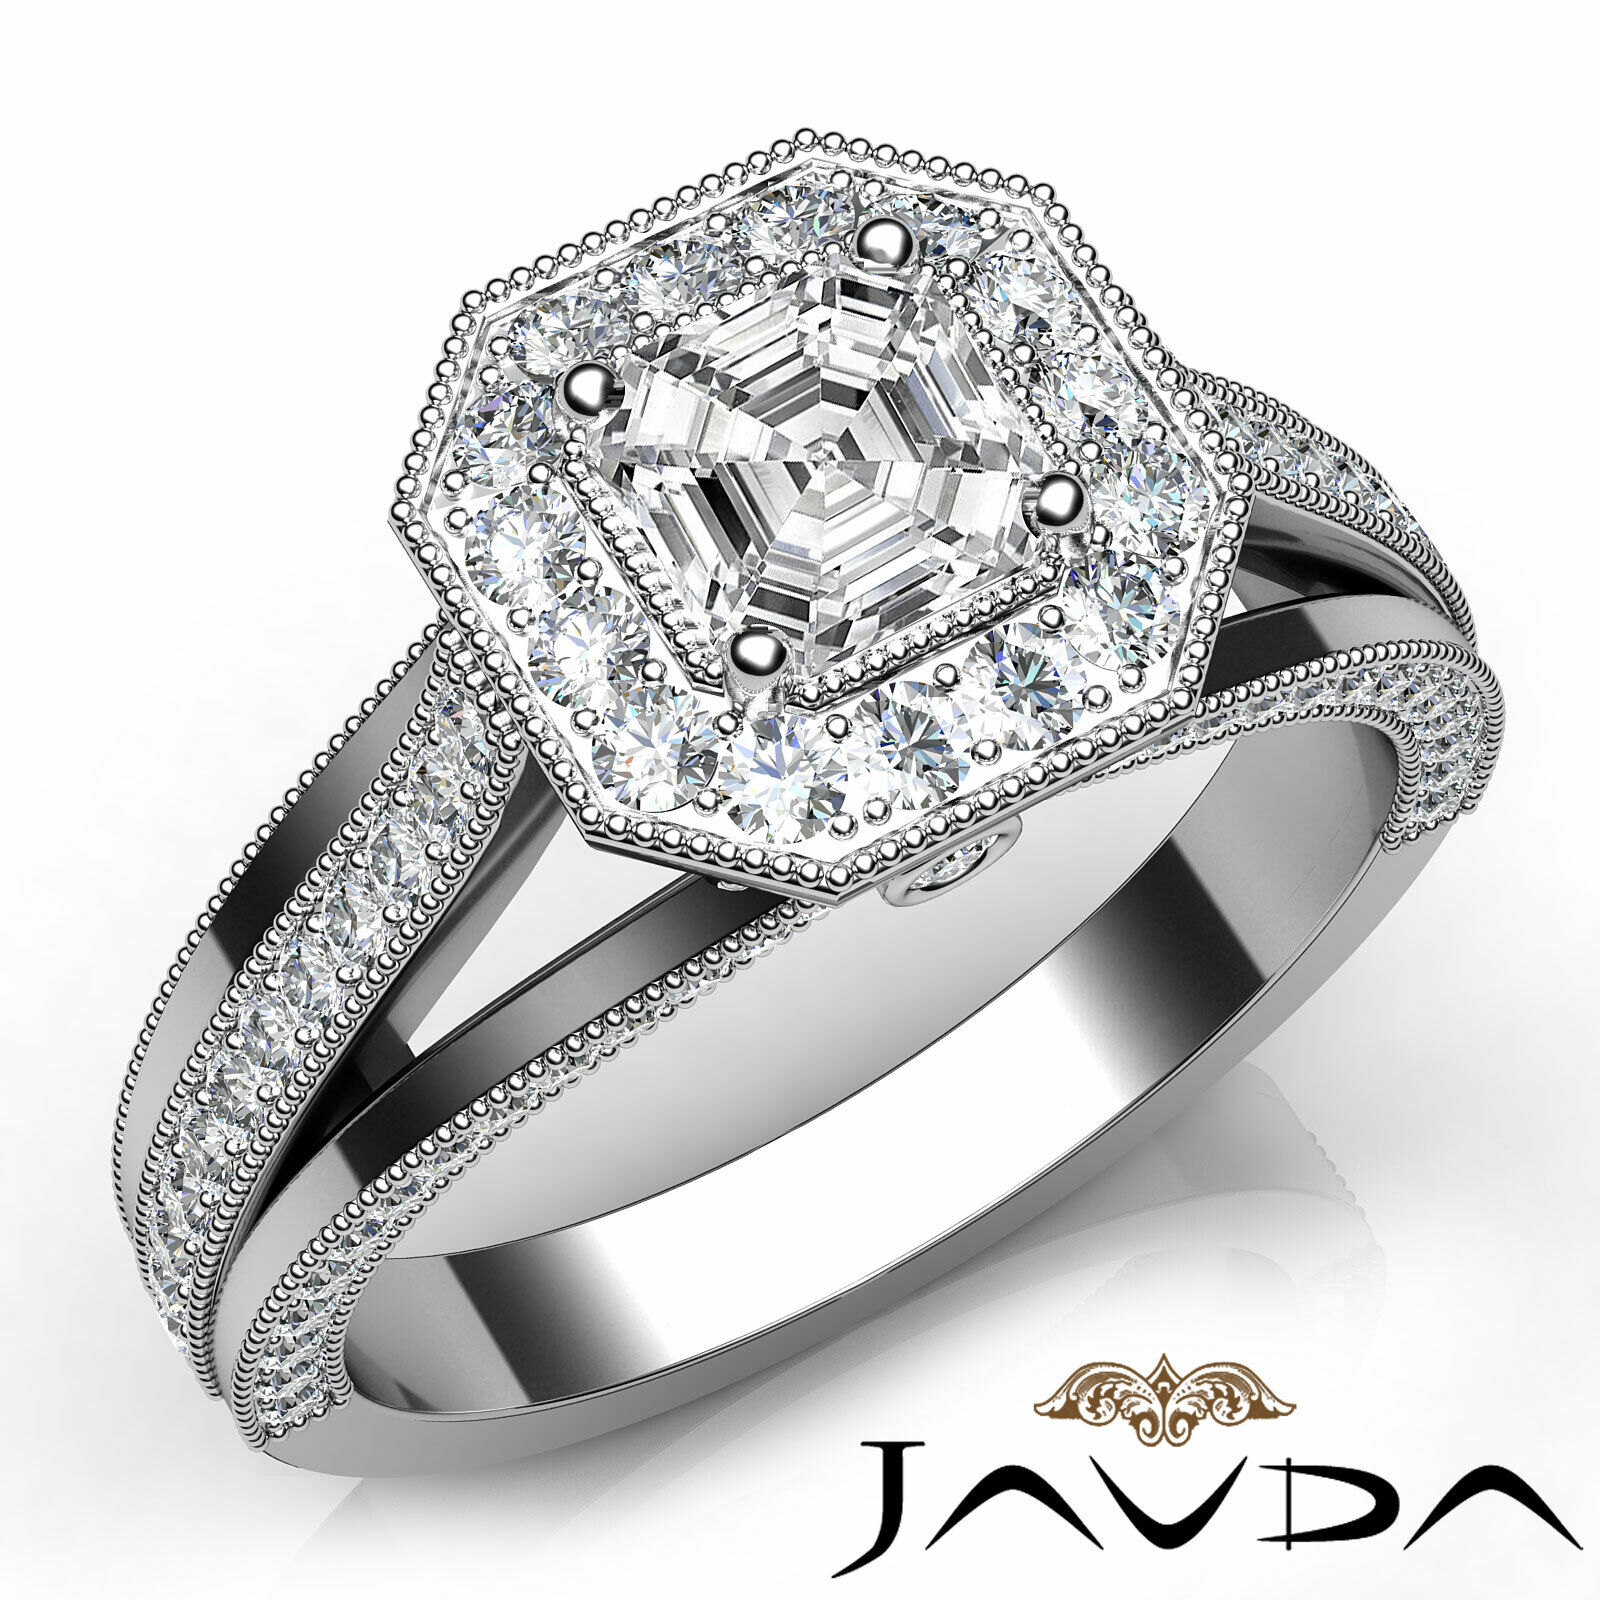 Asscher Cut Diamond Engagement Halo Pave Set Ring GIA G VS2 18k White Gold 1.4Ct